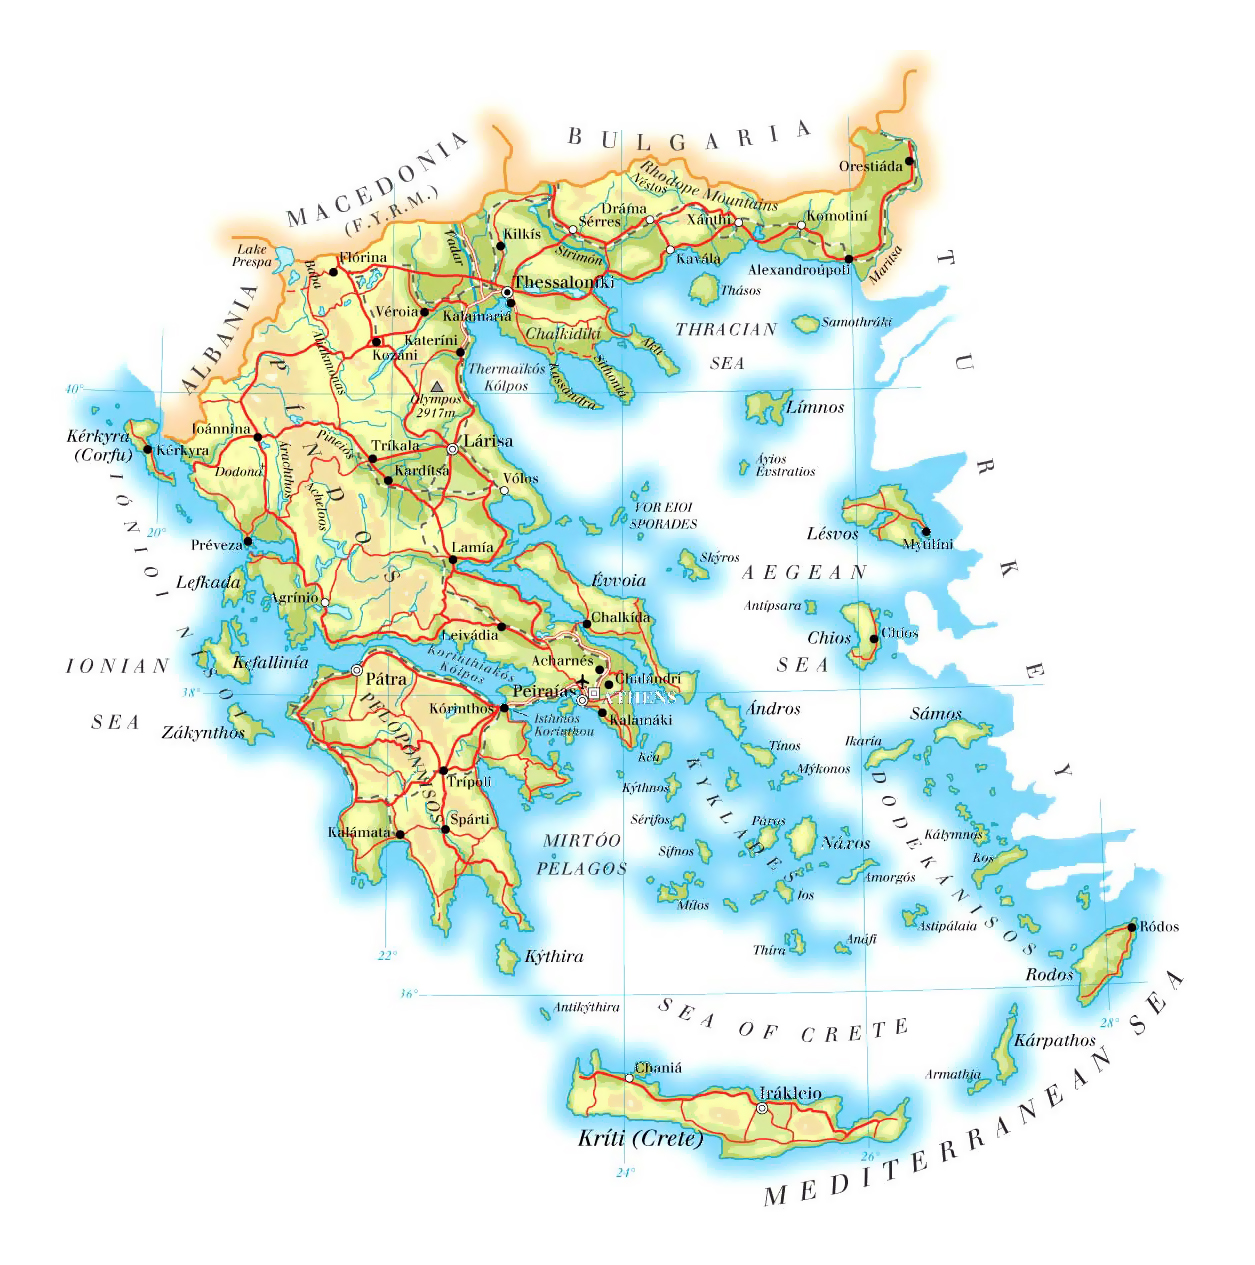 Detailed Elevation Map Of Greece With Roads Cities And Airports